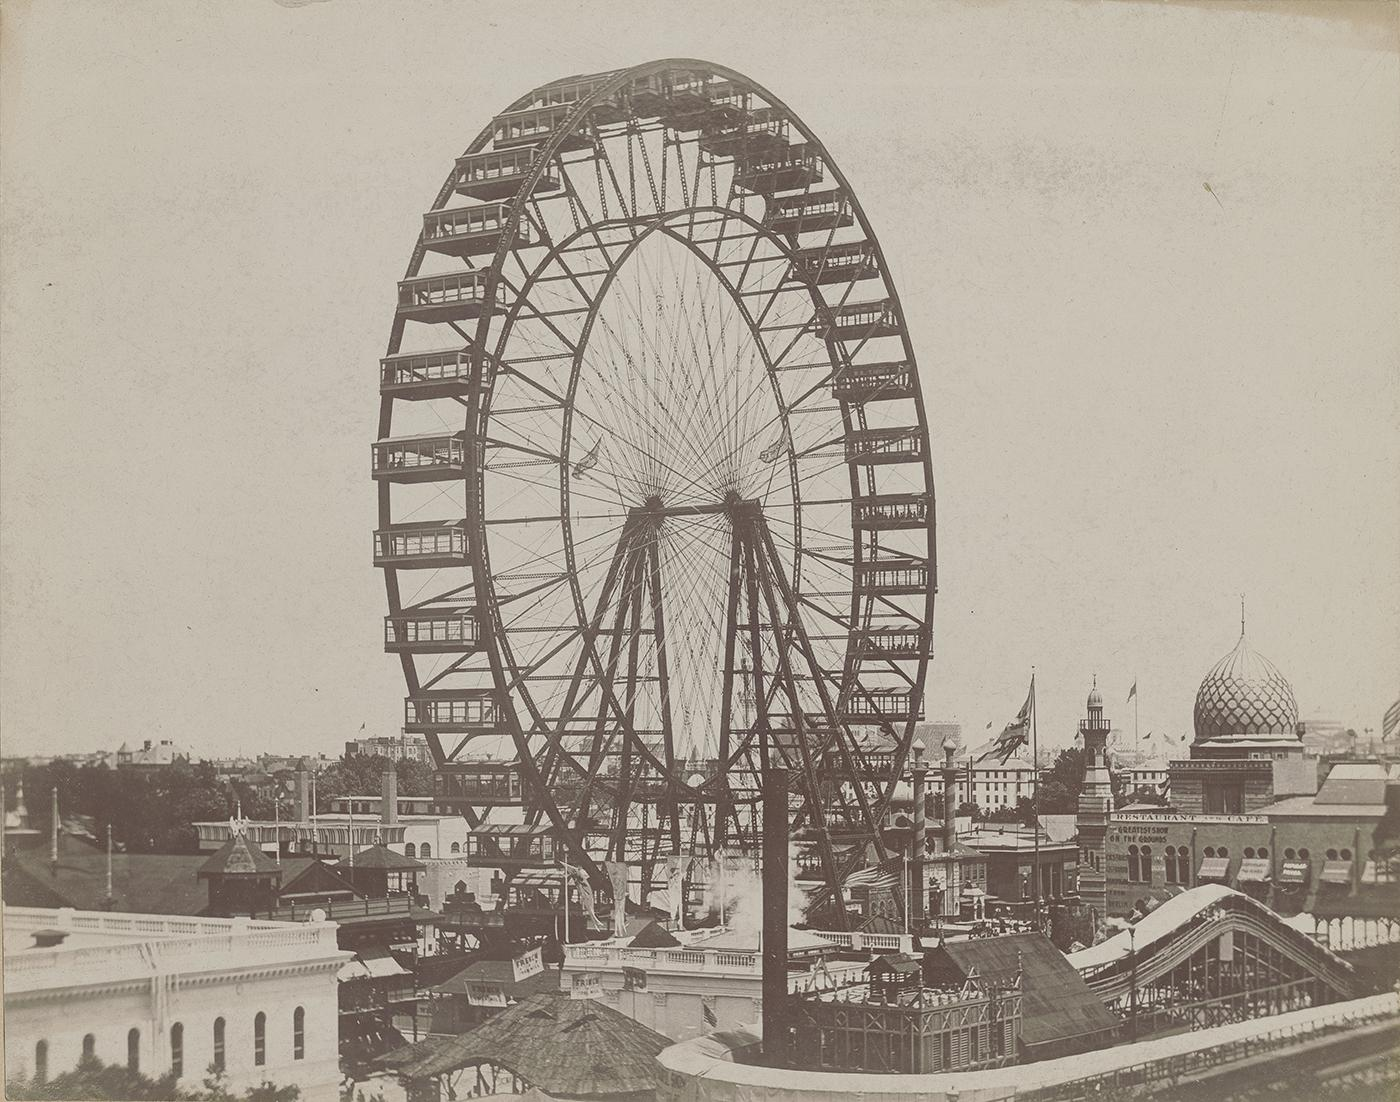 The first Ferris Wheel towers over the Midway at the 1893 World's Columbian Exposition in Chicago